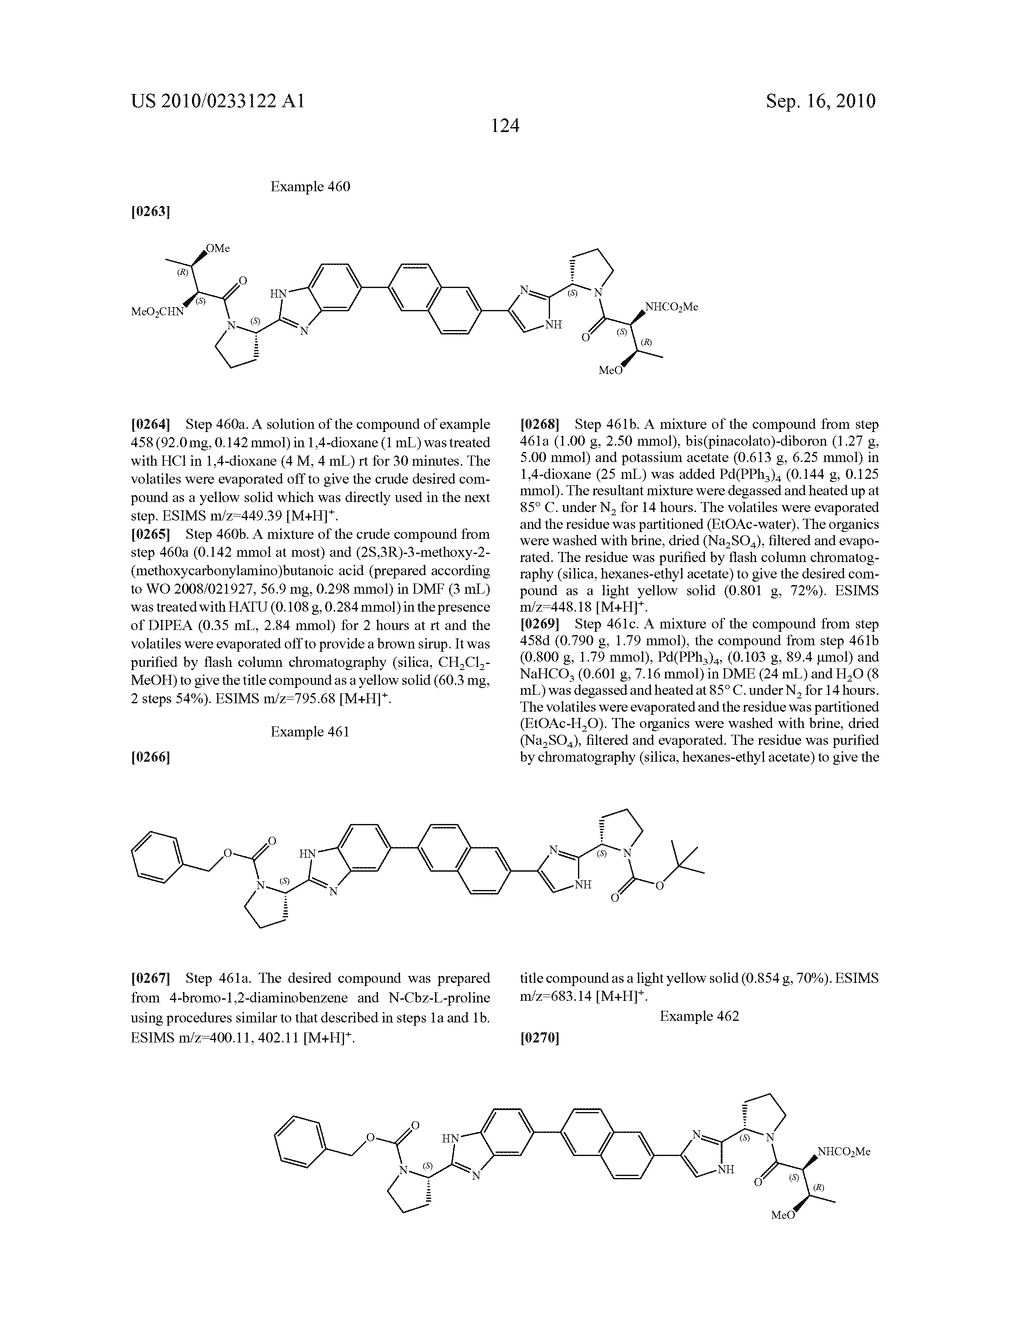 NOVEL BENZIMIDAZOLE DERIVATIVES - diagram, schematic, and image 125